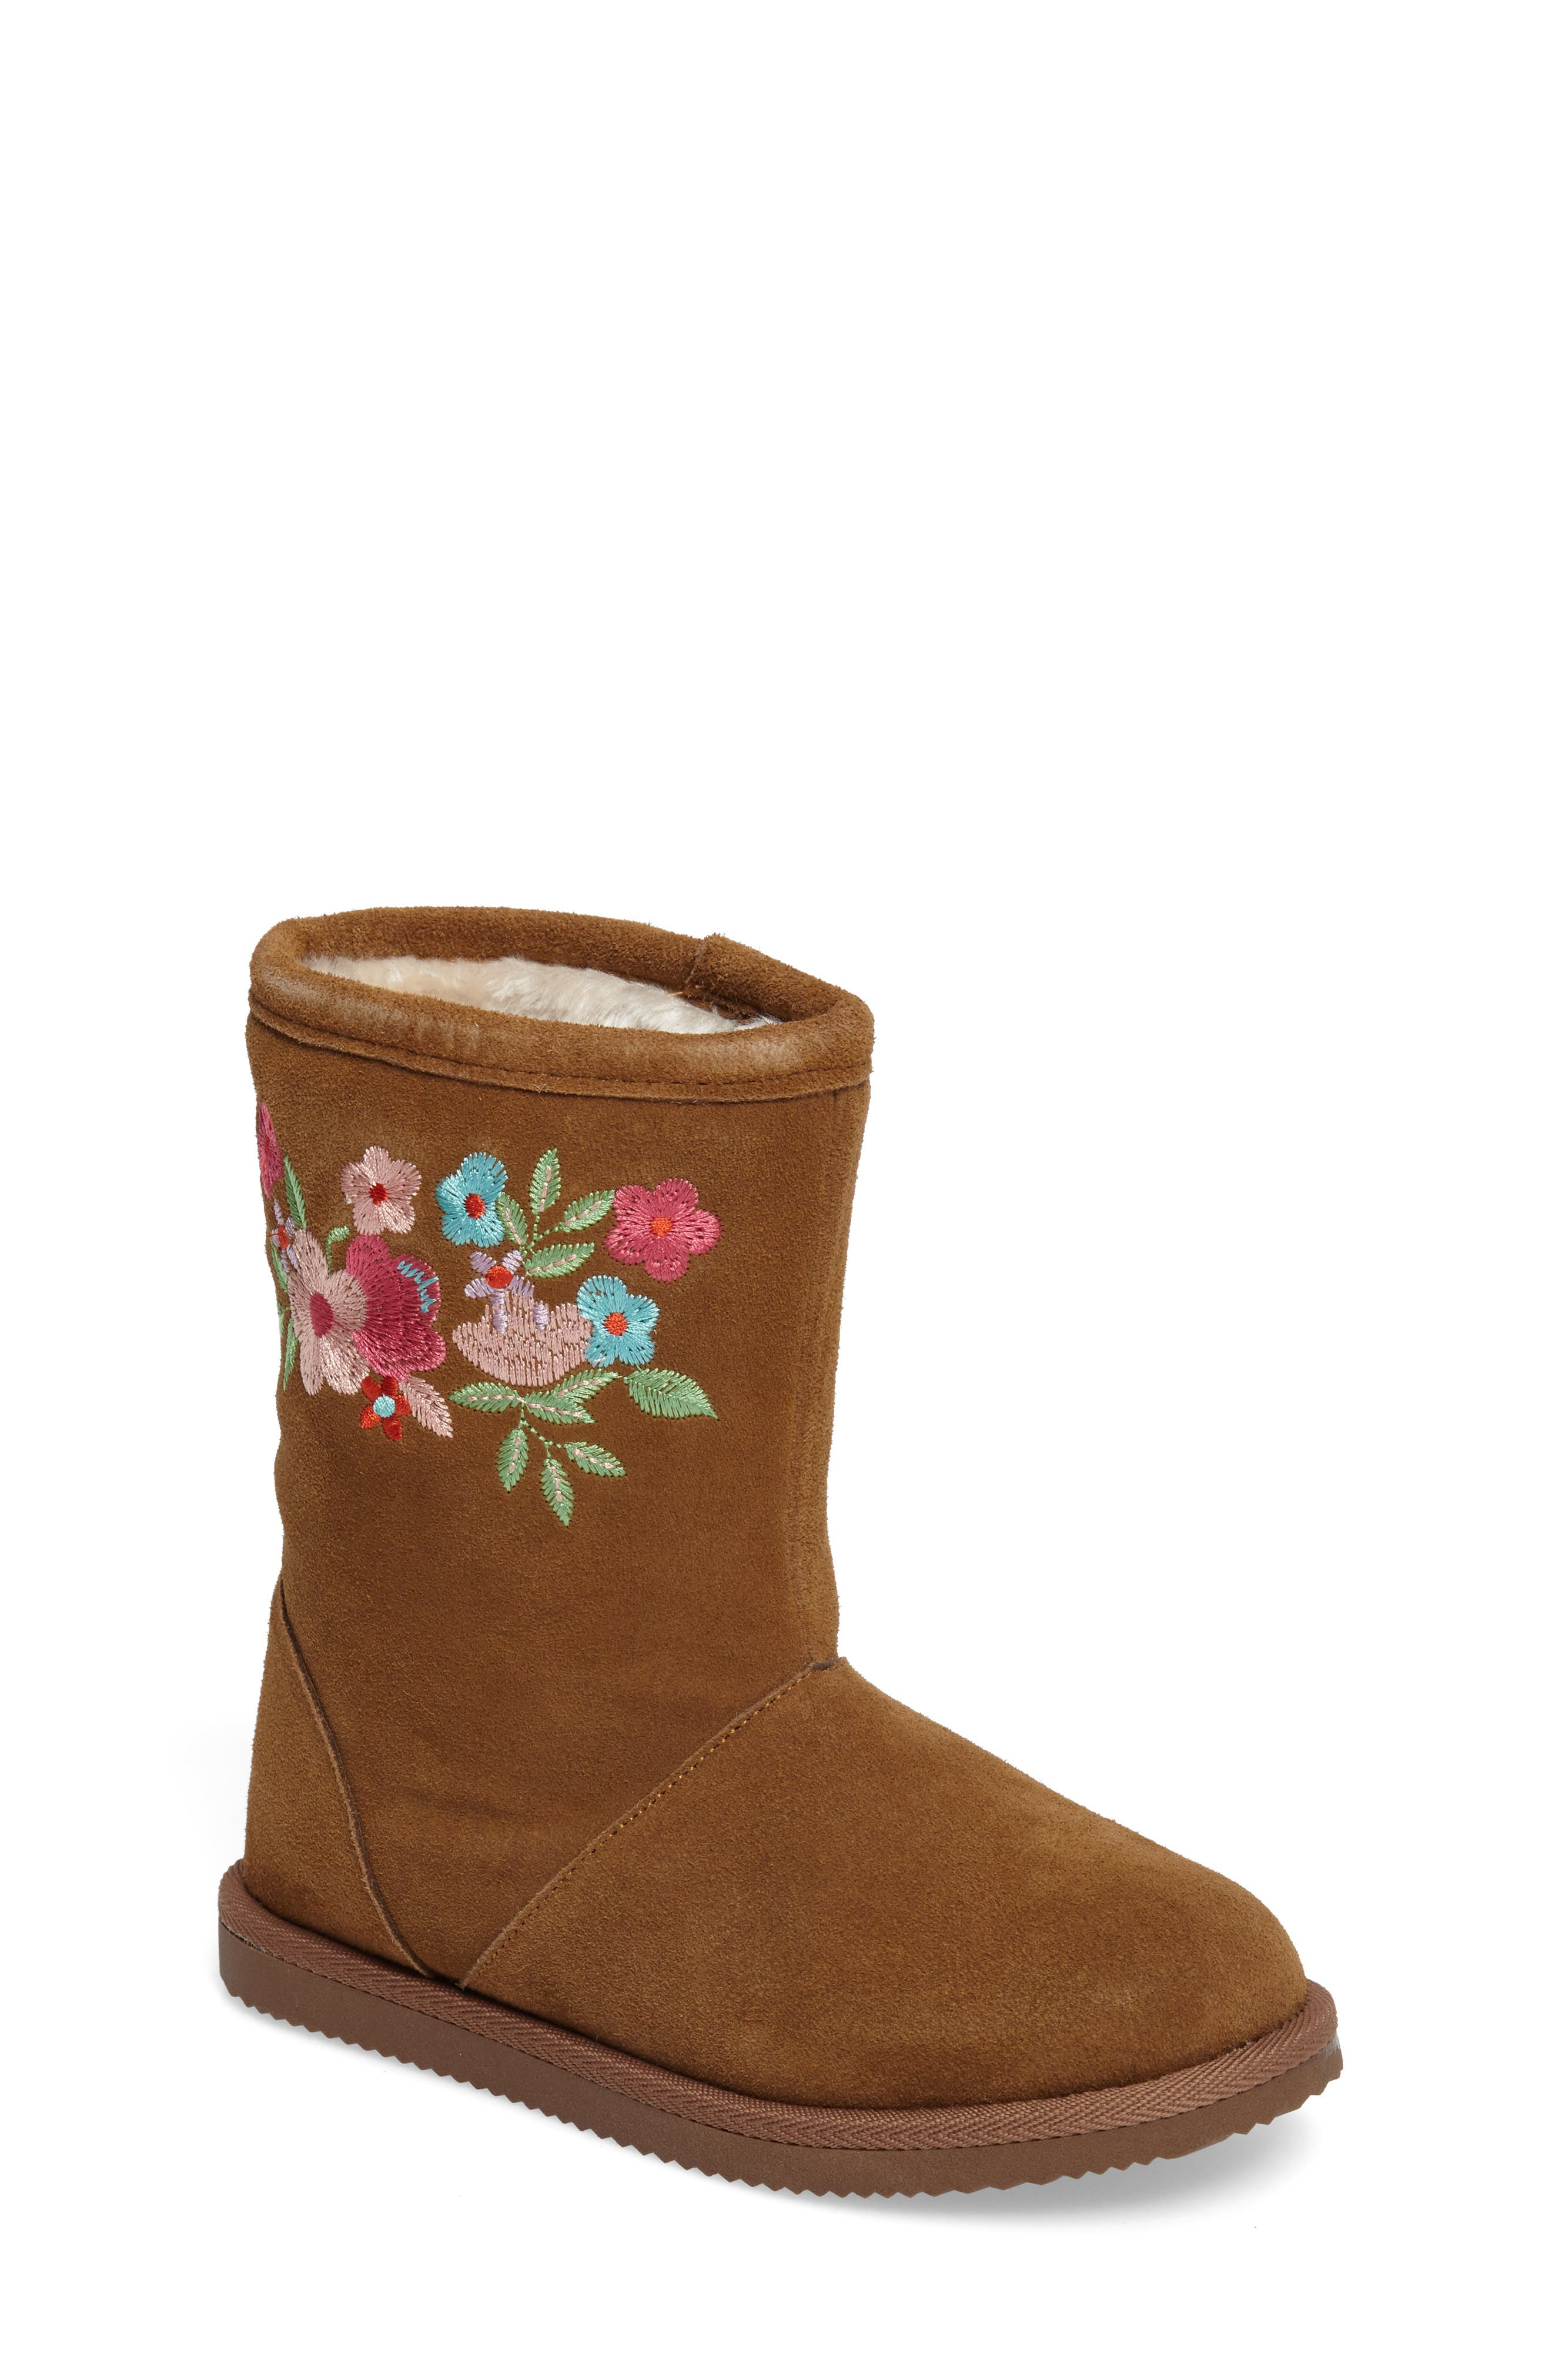 Aline Embroidered Faux Fur Boot,                             Main thumbnail 1, color,                             Chestnut Suede